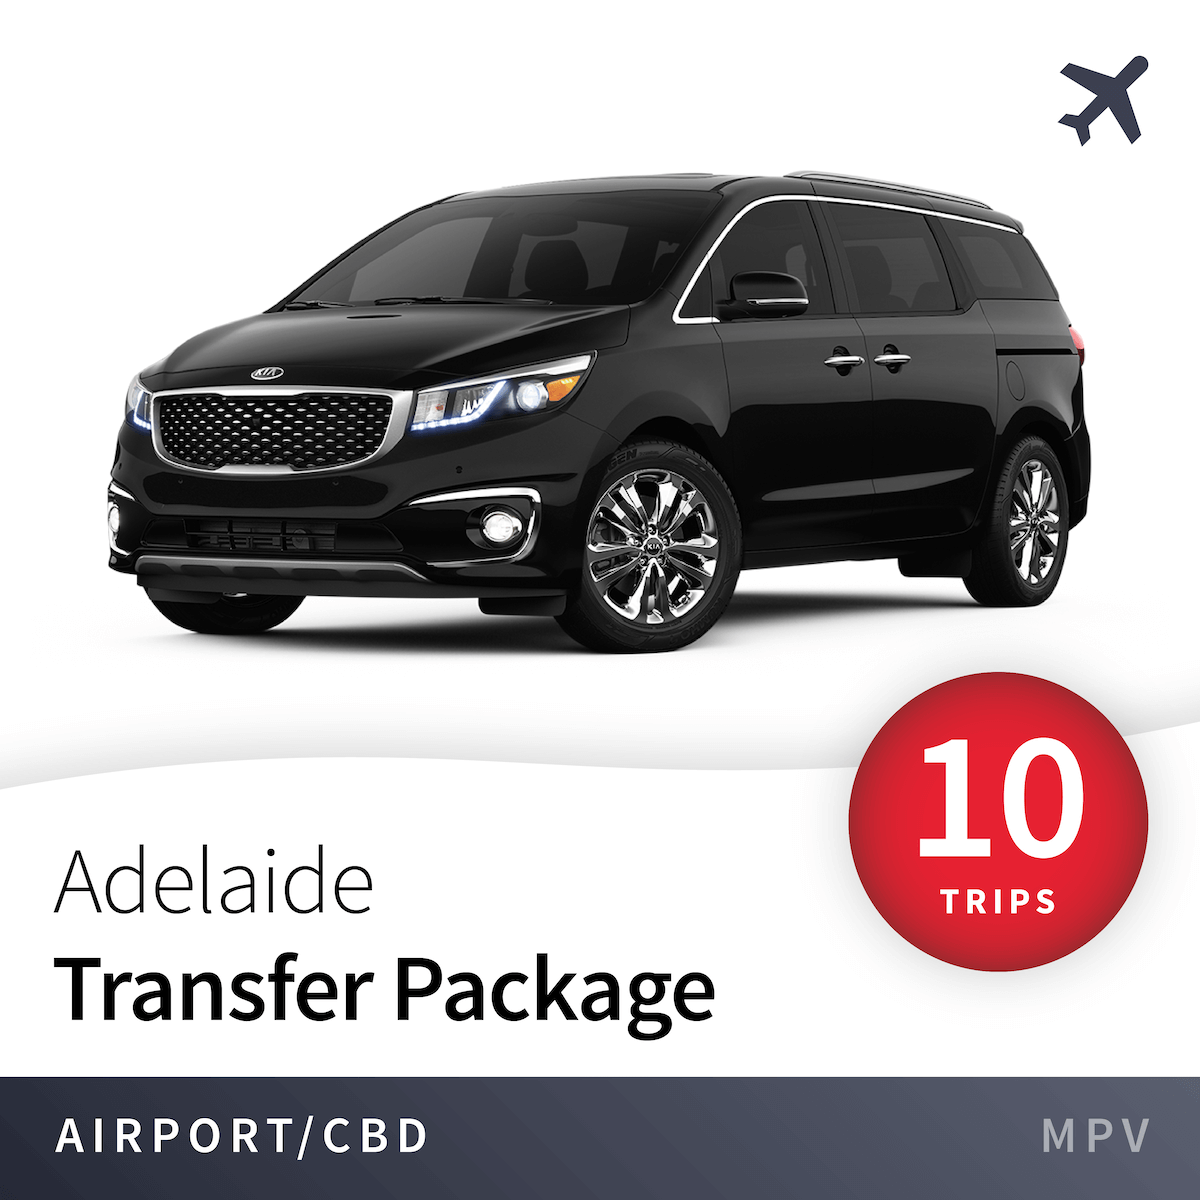 Adelaide Airport Transfer Package - MPV (10 Trips) 6